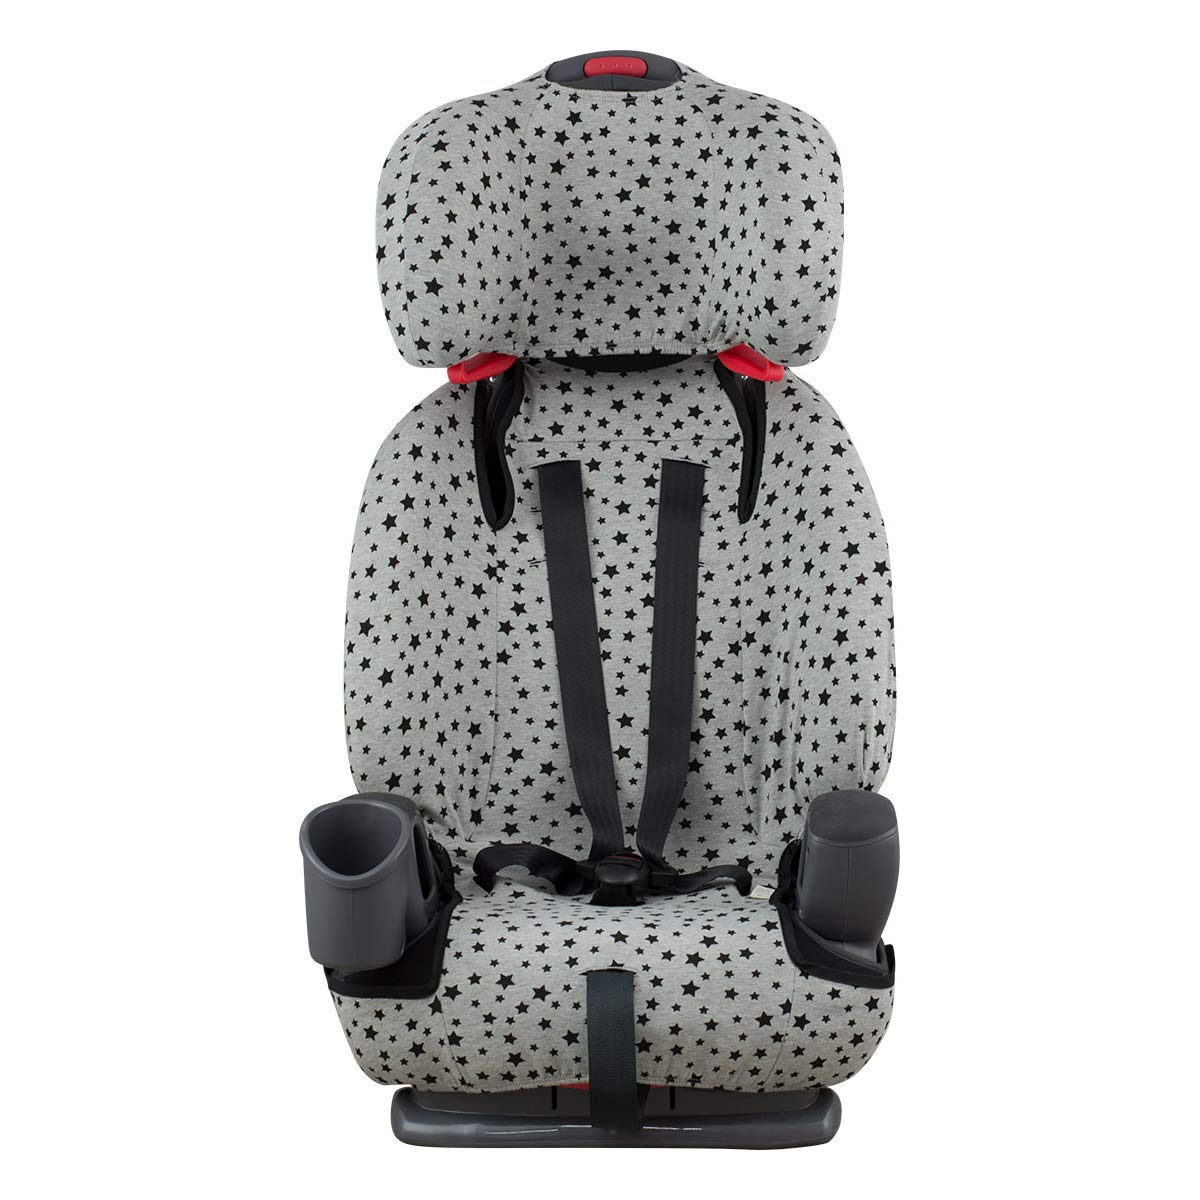 JANABEBE Foam Cover Liner for Graco Nautilus Car Seat Protector Janabeb/é Black Star